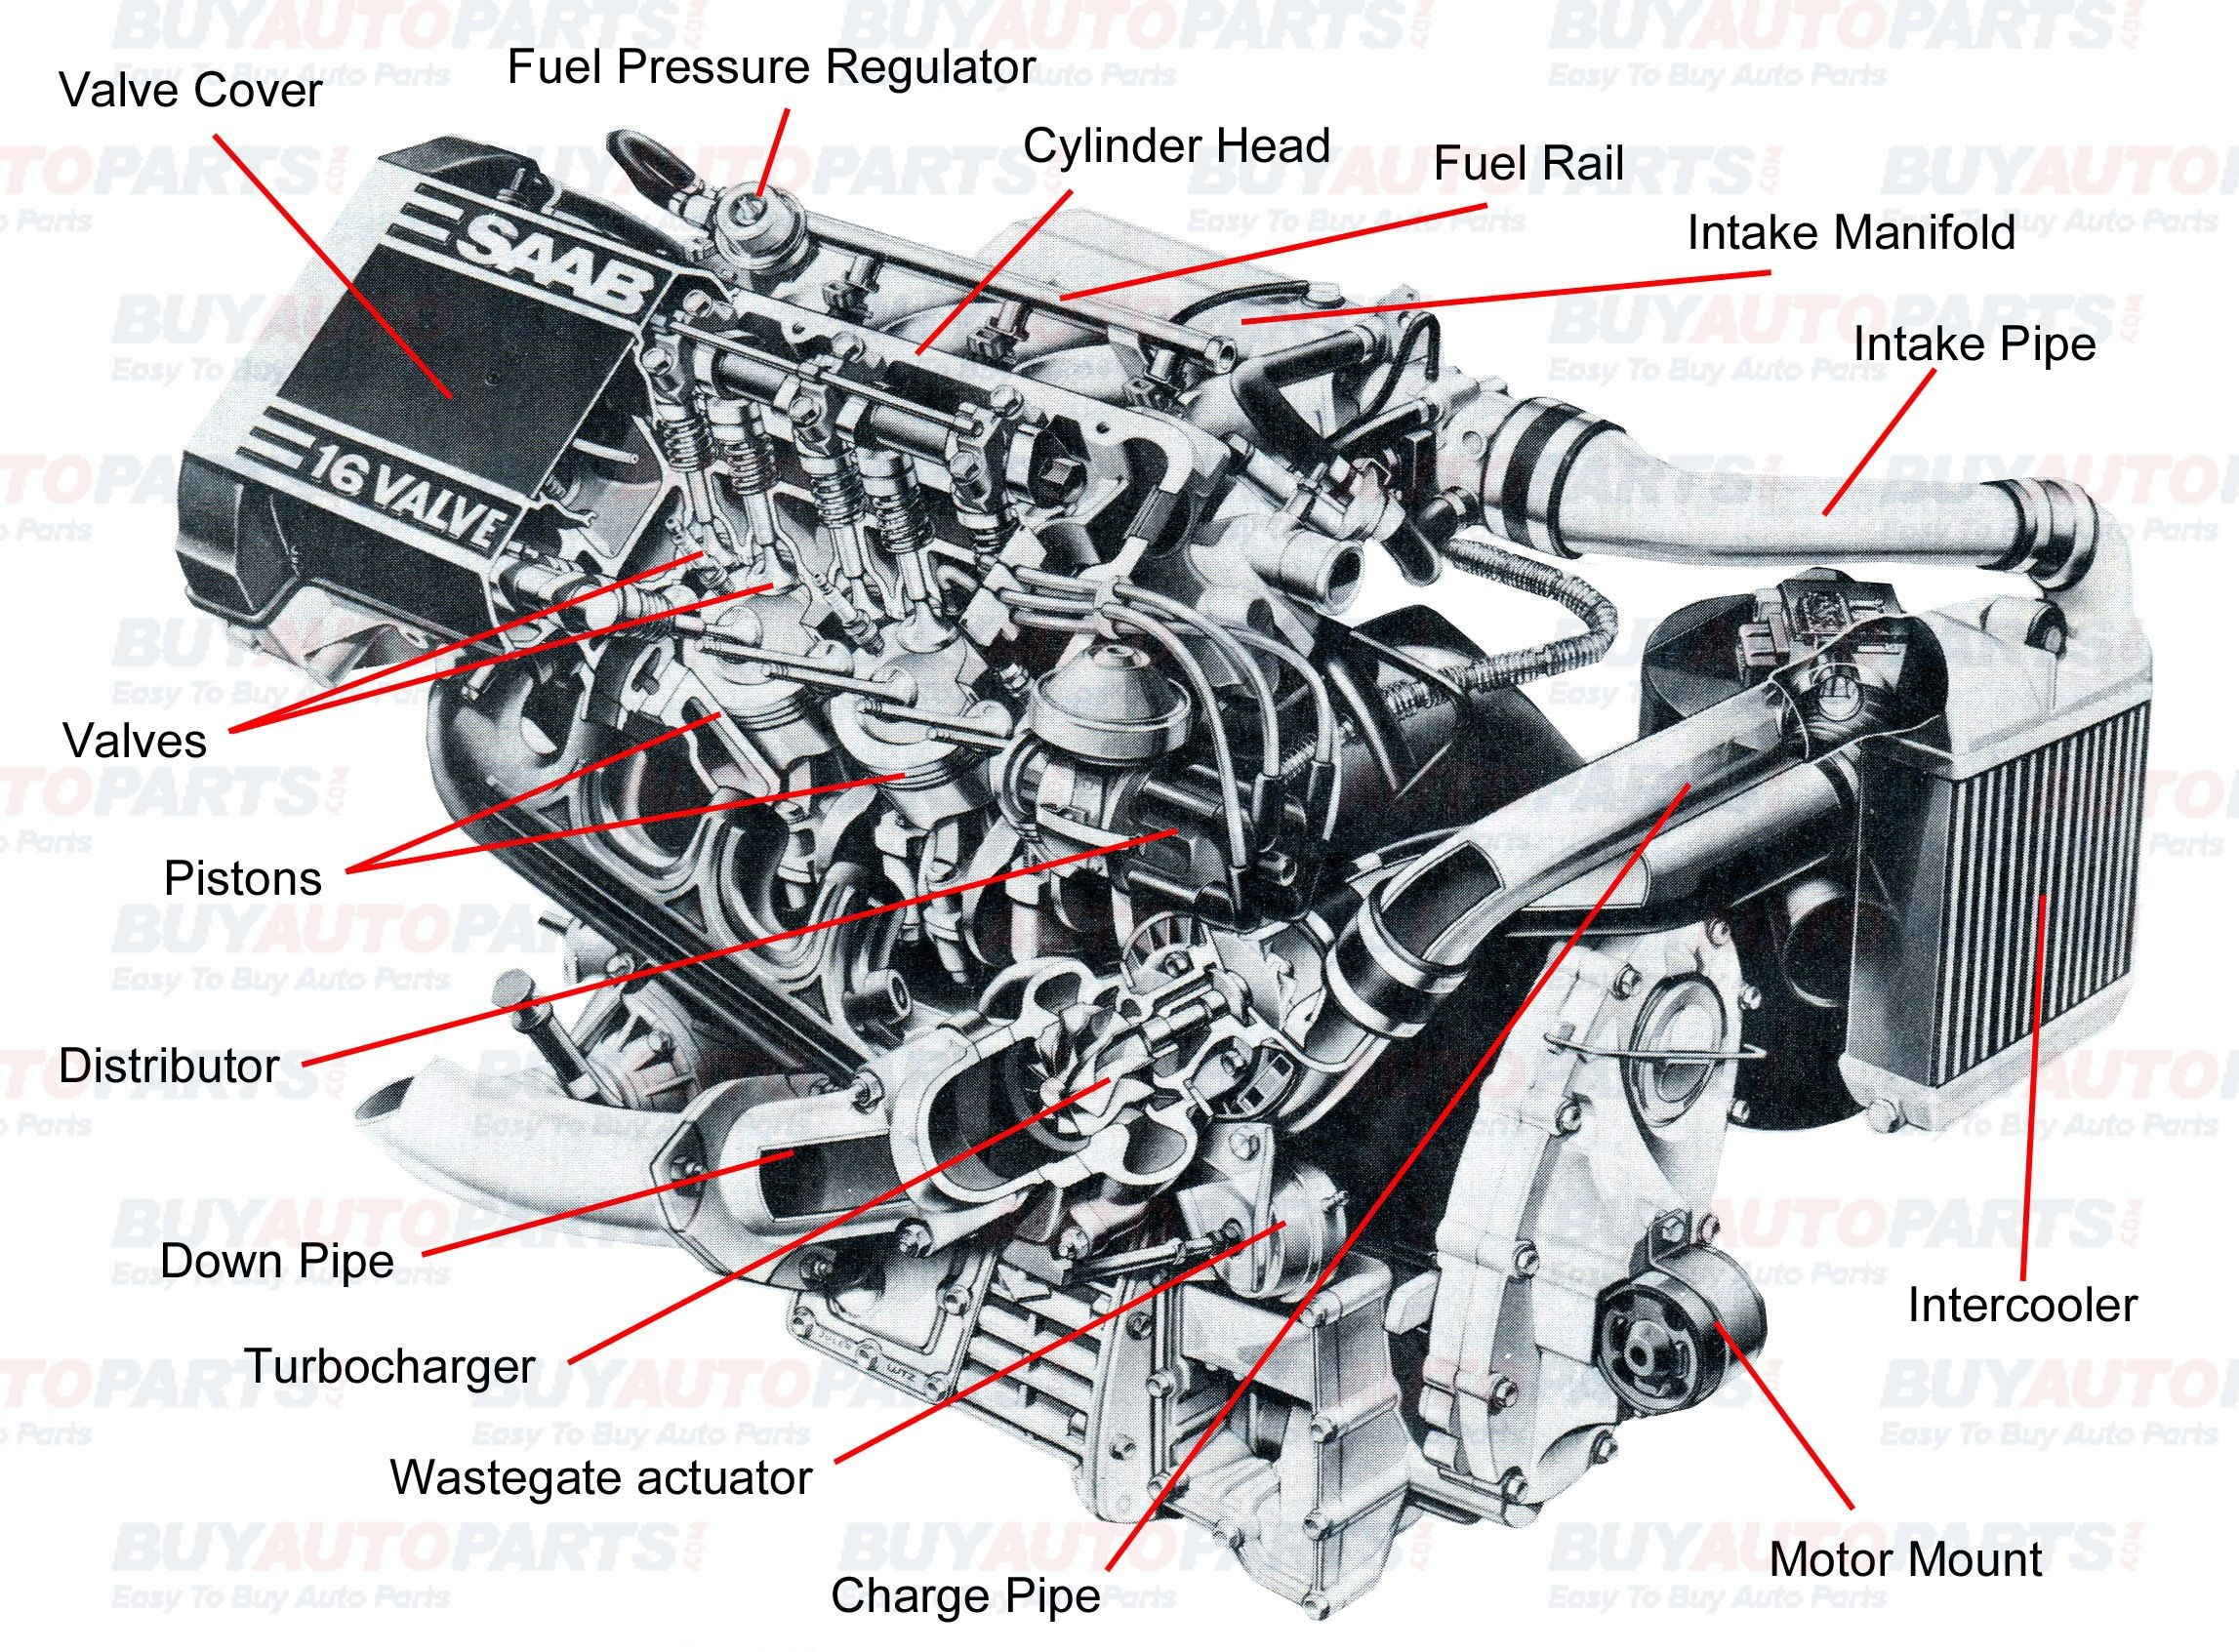 Car Parts Diagram Pin by Jimmiejanet Testellamwfz On What Does An Engine with Turbo Of Car Parts Diagram